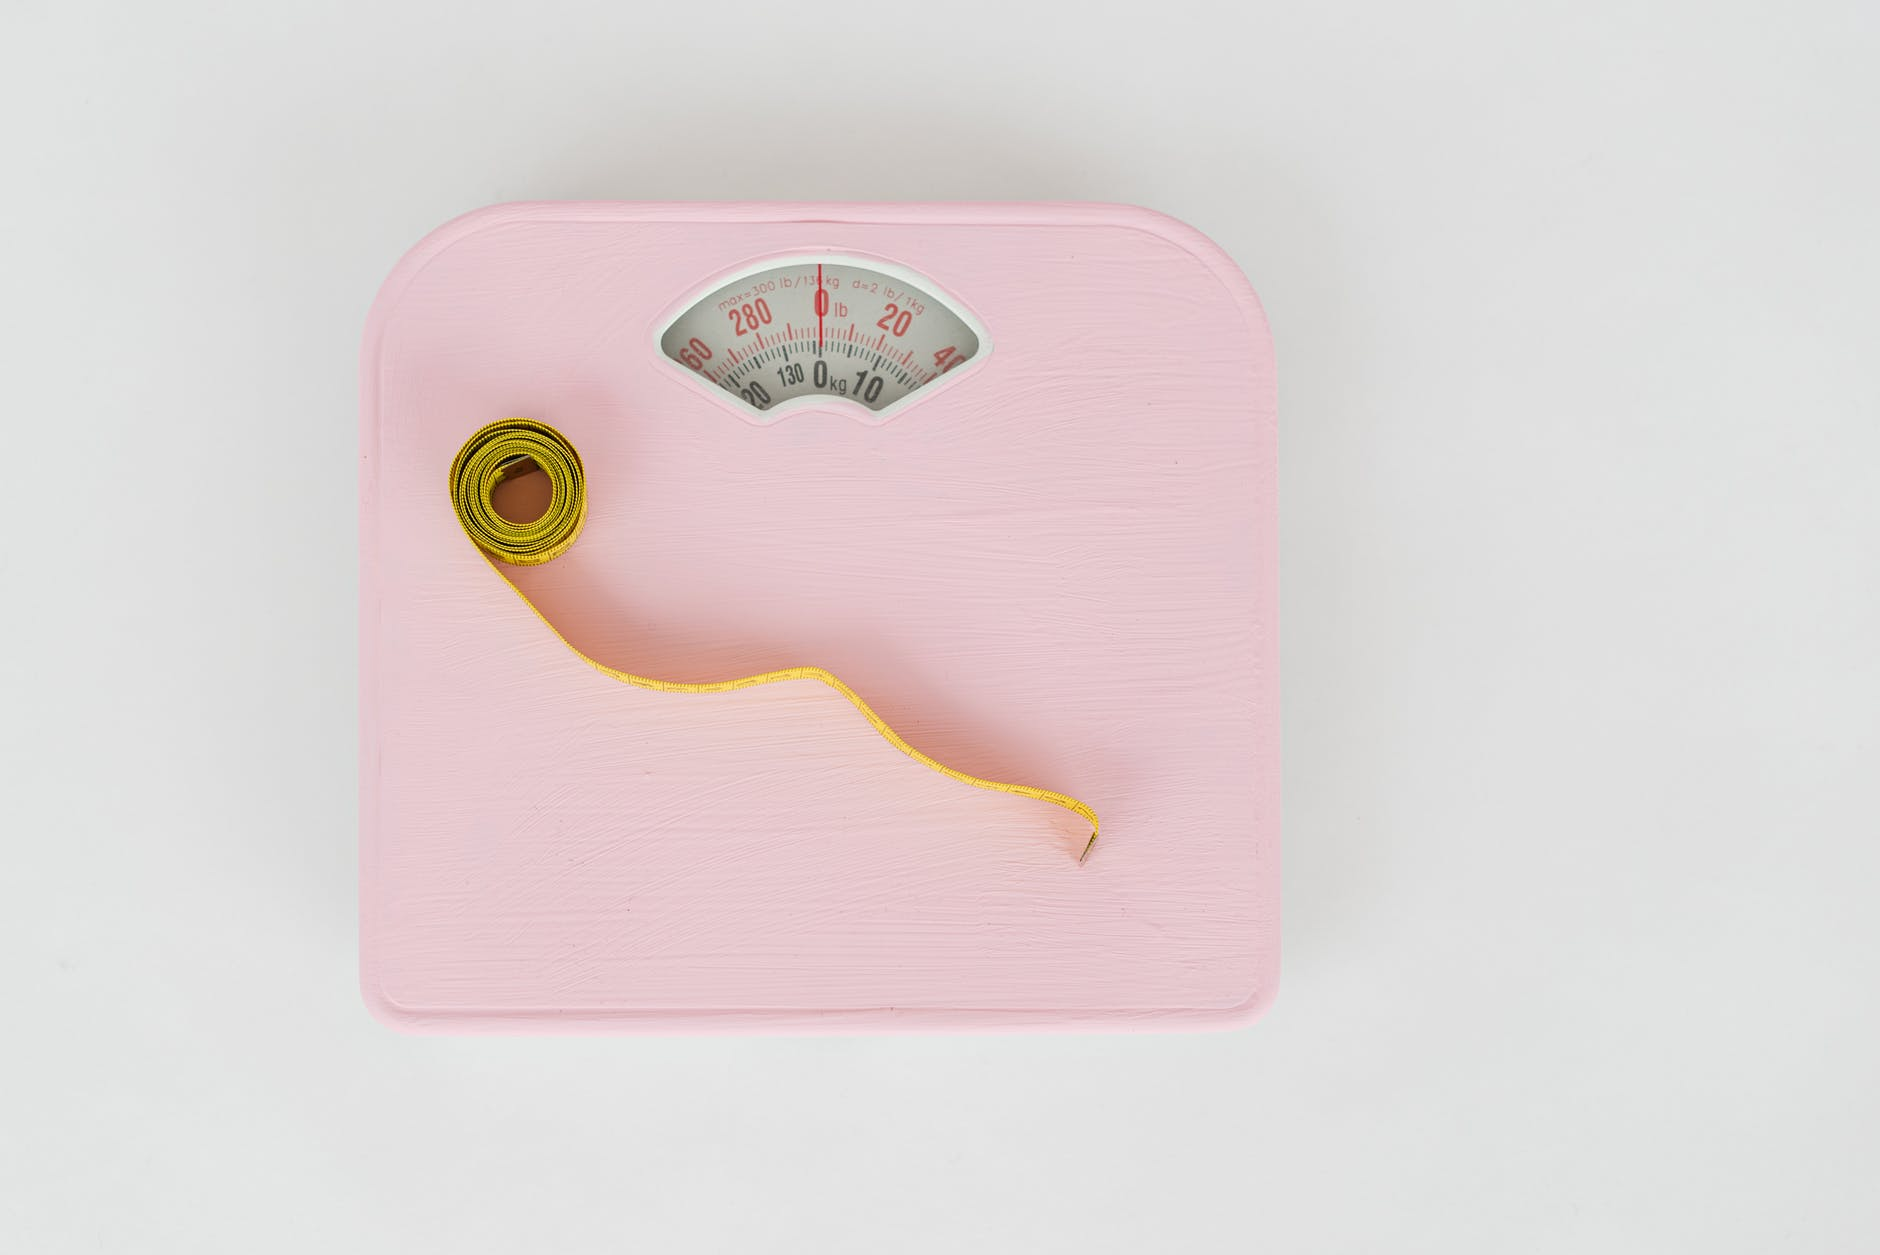 measuring tape on a weighing scale